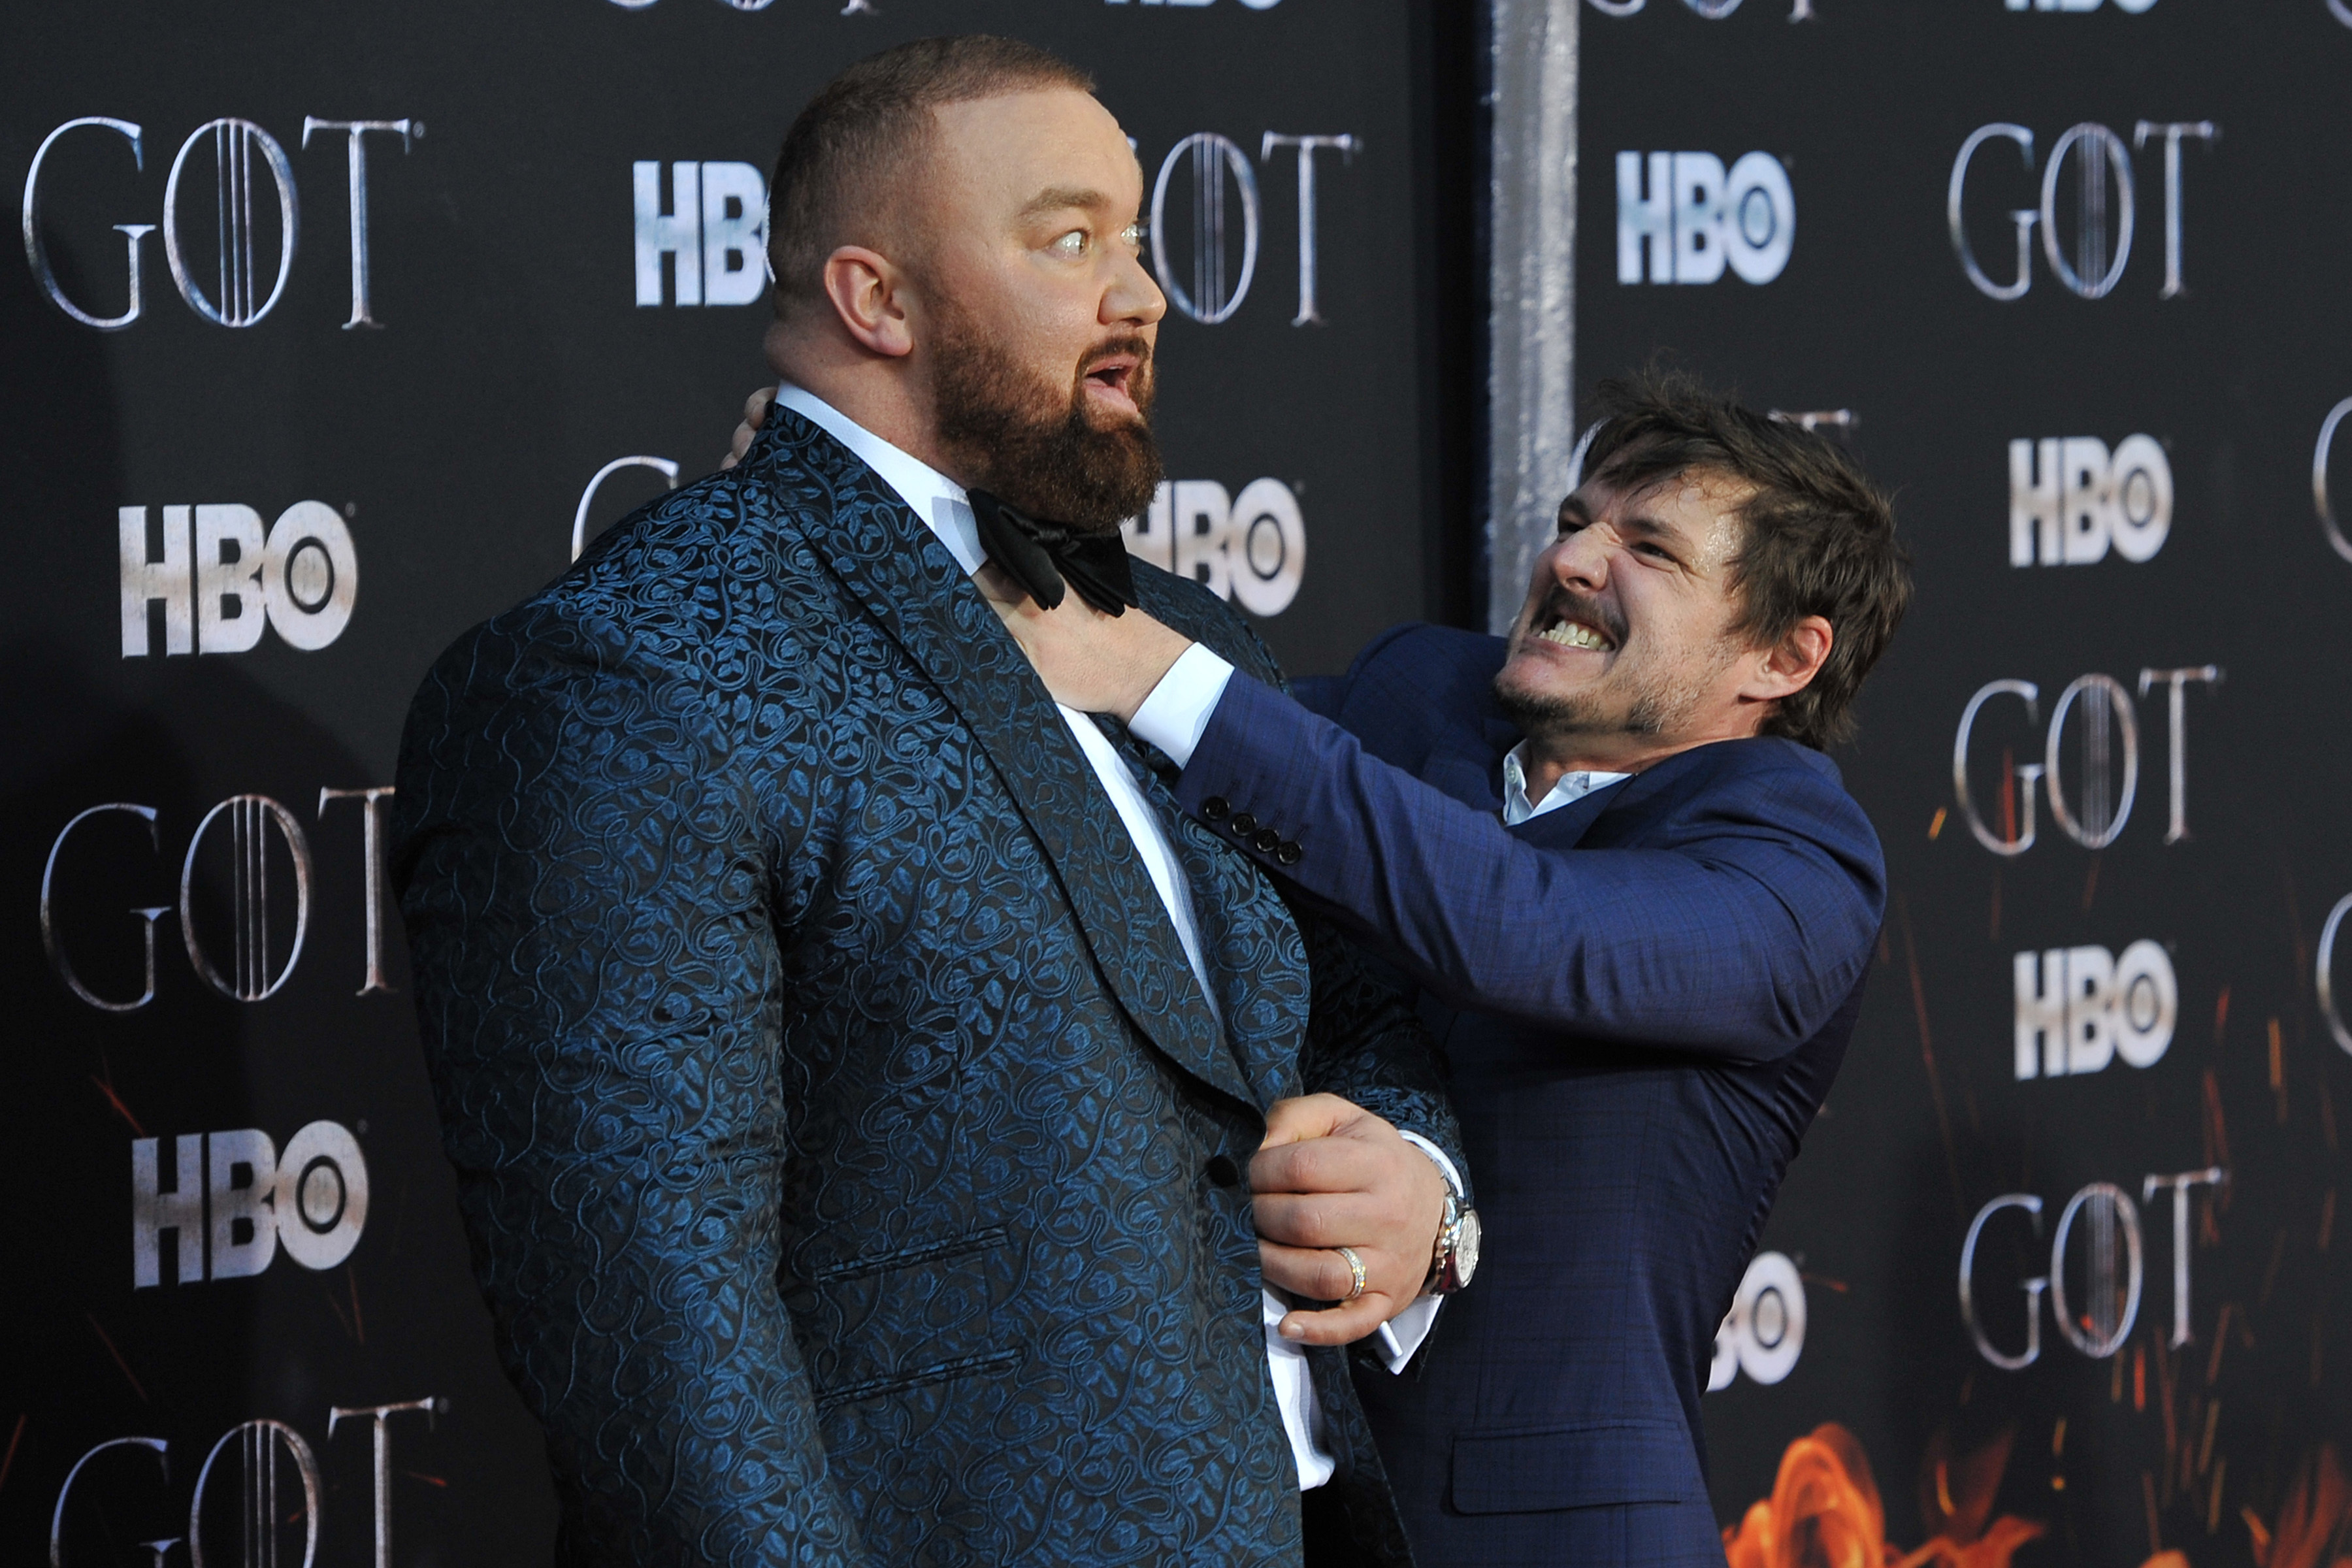 The Mountain and Prince Oberyn at Game of Thrones premiere